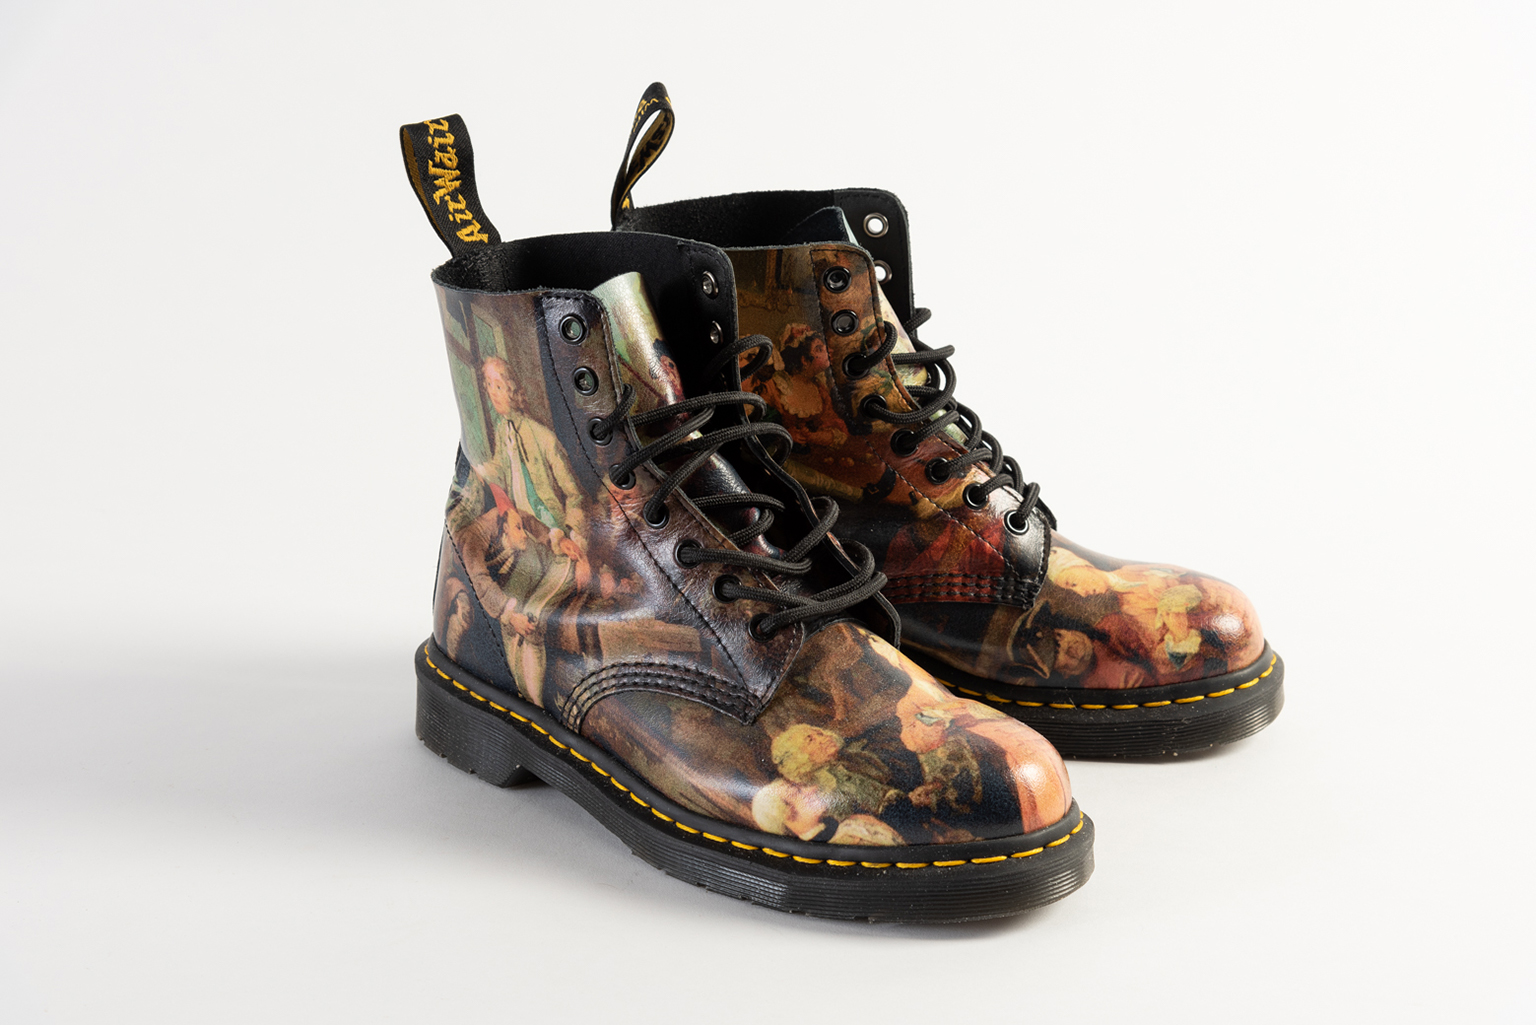 Leather boots printed with 'A Rake's Progress' by William Hogarth, 2015. Made by Dr Martens.